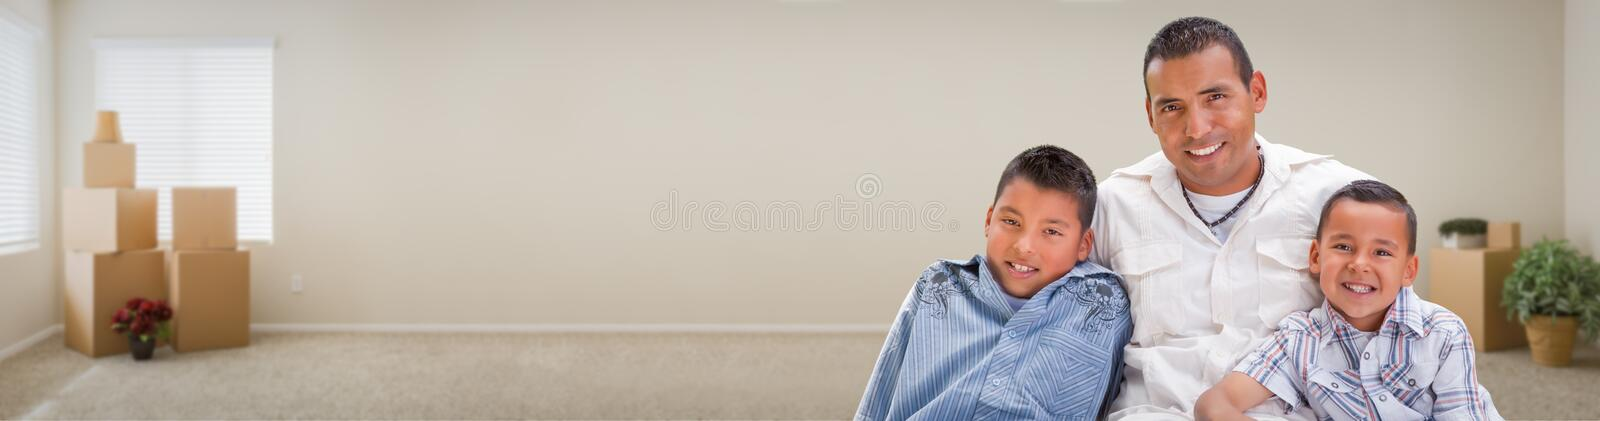 Young Hispanic Father and Sons Family Inside Room with Boxes Ban royalty free stock photos